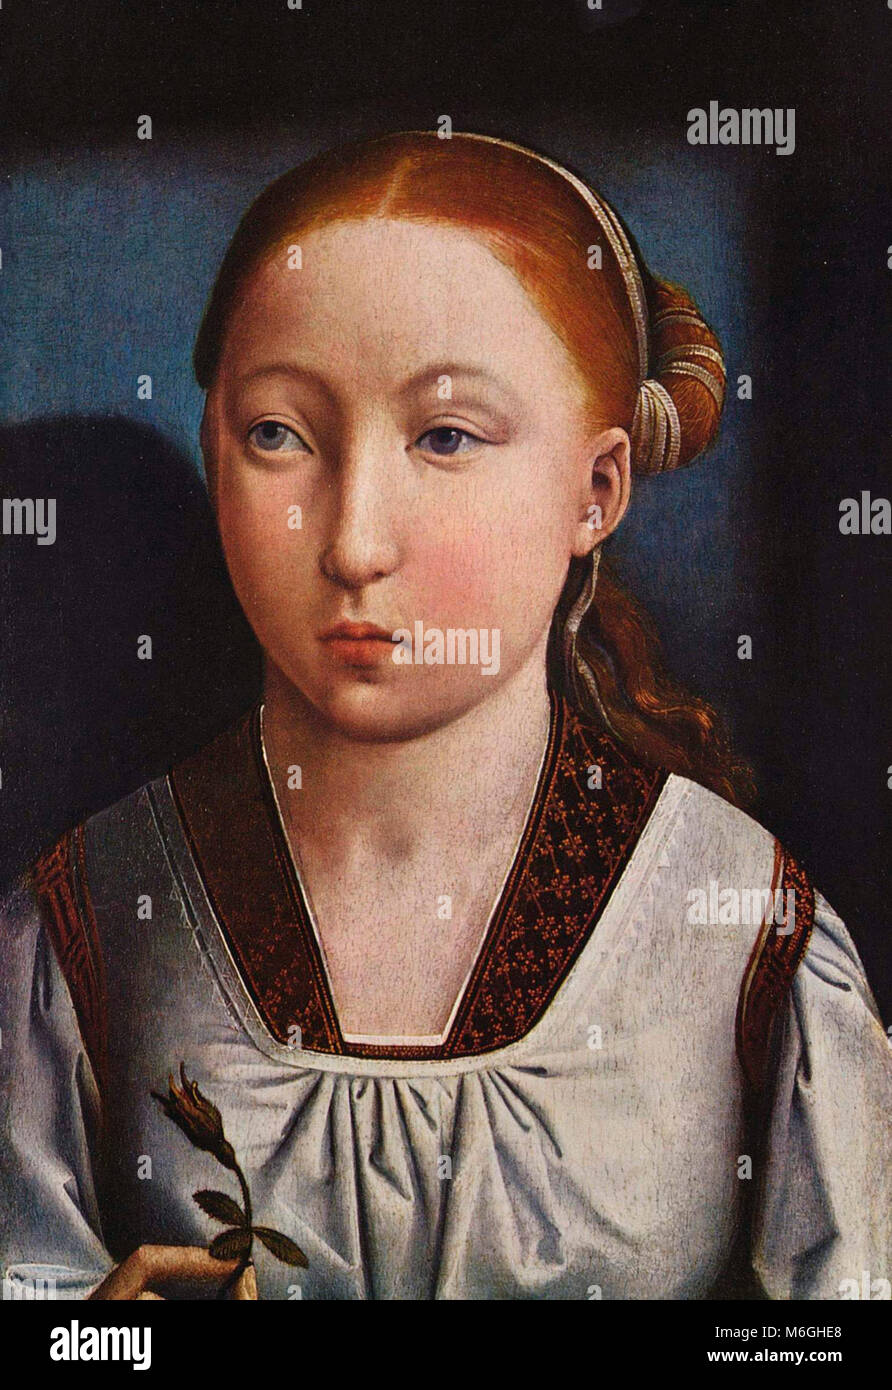 Portrait of a girl, probably Catherine of Aragon at about 11 years of age - Juan de Flandes, circa 1496 - Stock Image